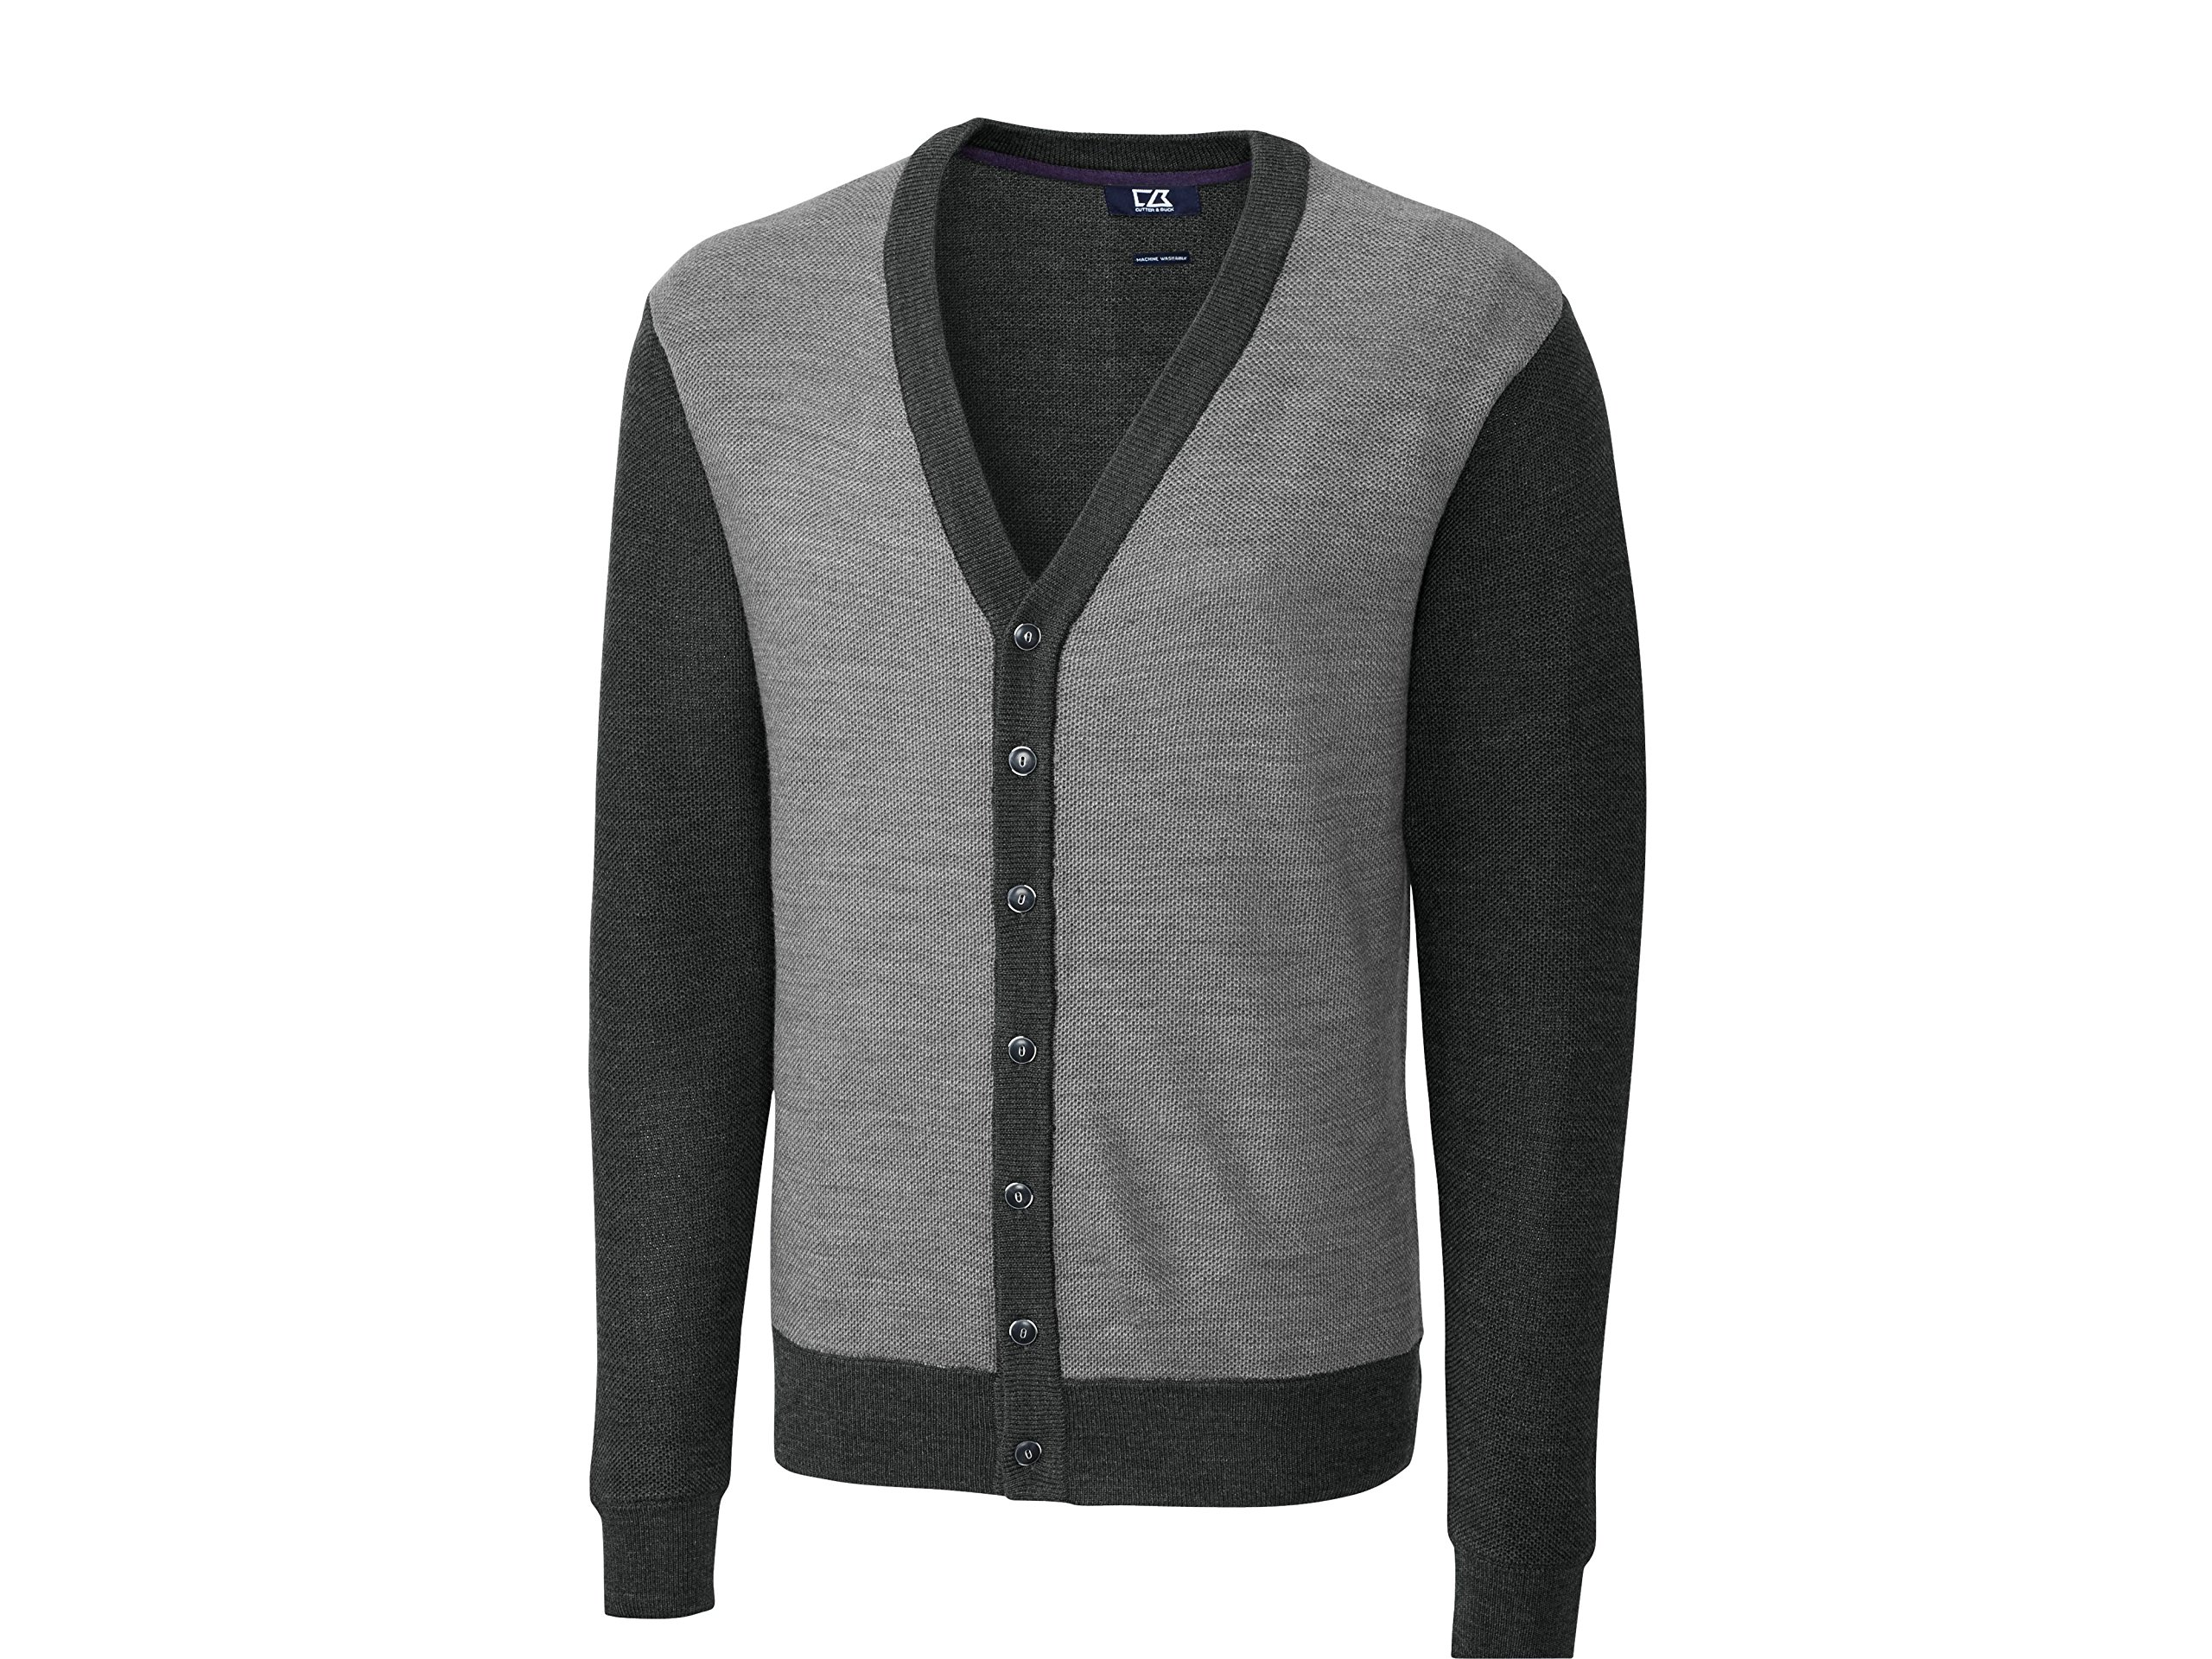 Cutter & Buck Men's Big-Tall Cornish Cardigan Sweater, Charcoal Heather, 3X/Big by Cutter & Buck (Image #1)